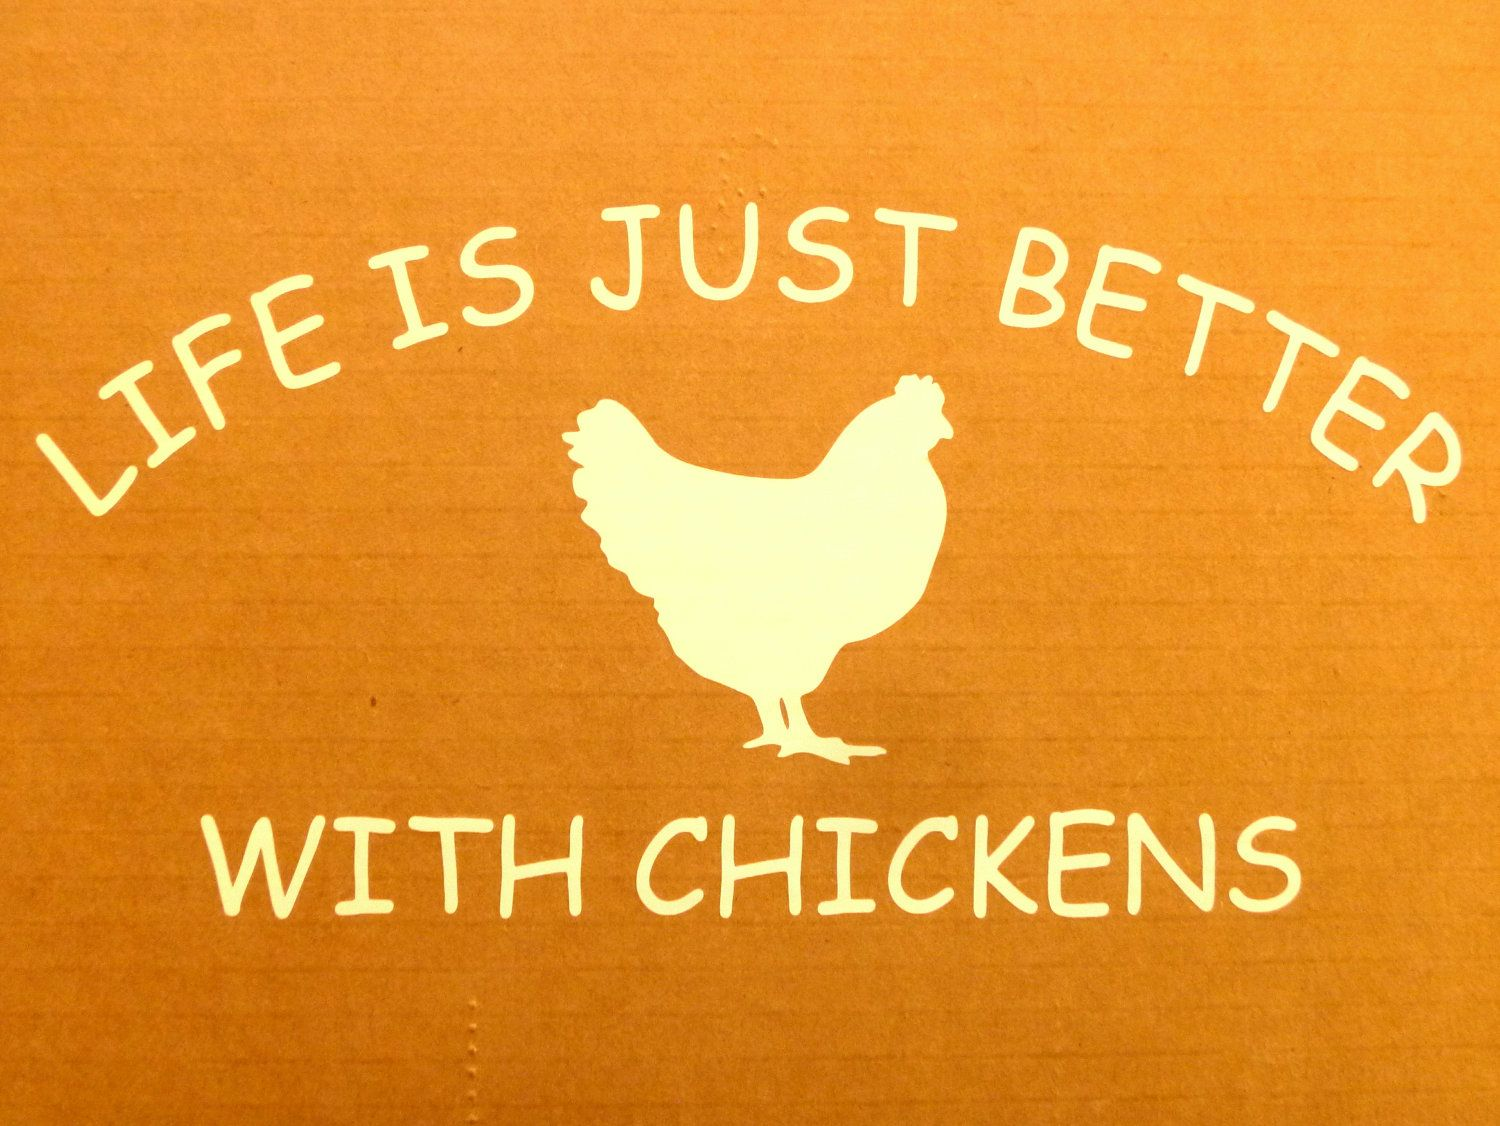 Chicken Pet Quote: Life Is Just Better With CHICKENS Fresh Eggs Daily Chicken